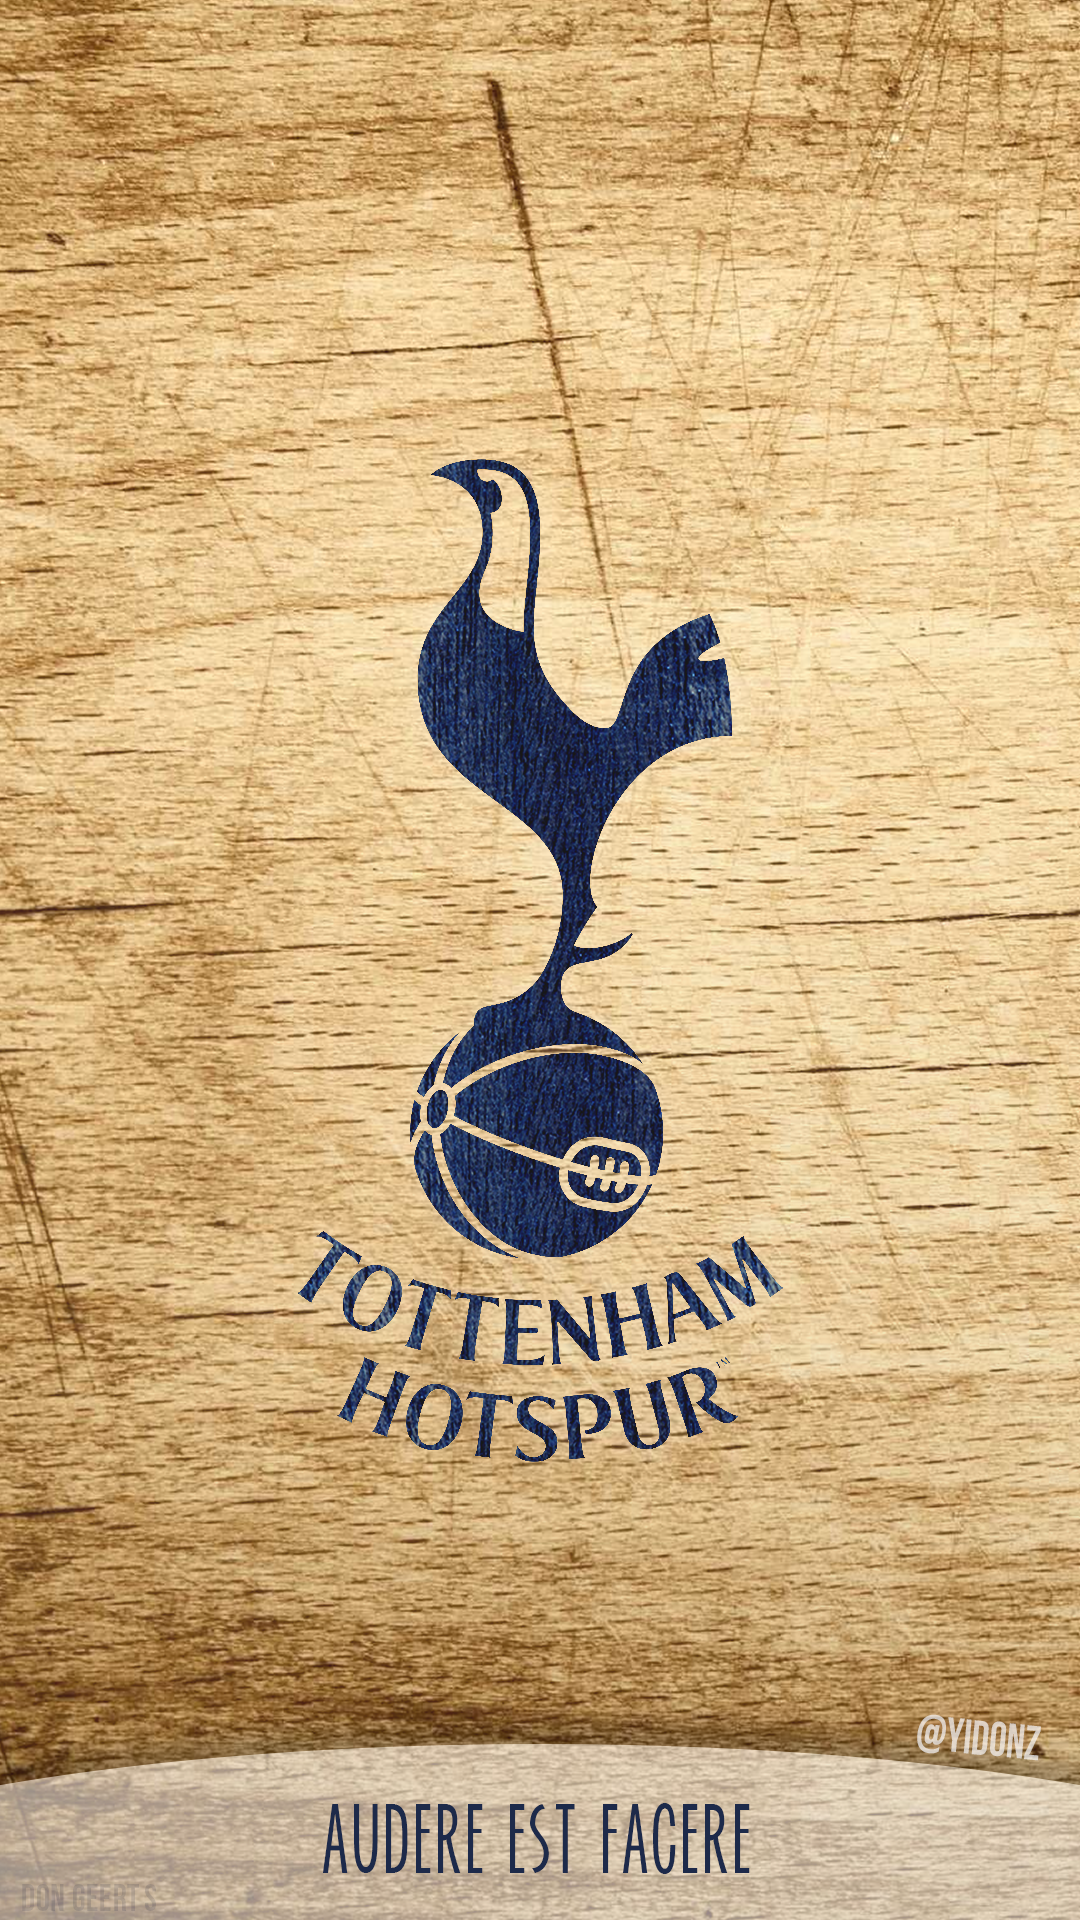 Tottenham Hotspur Logo Wallpaper For Phones By Donioli On Deviantart